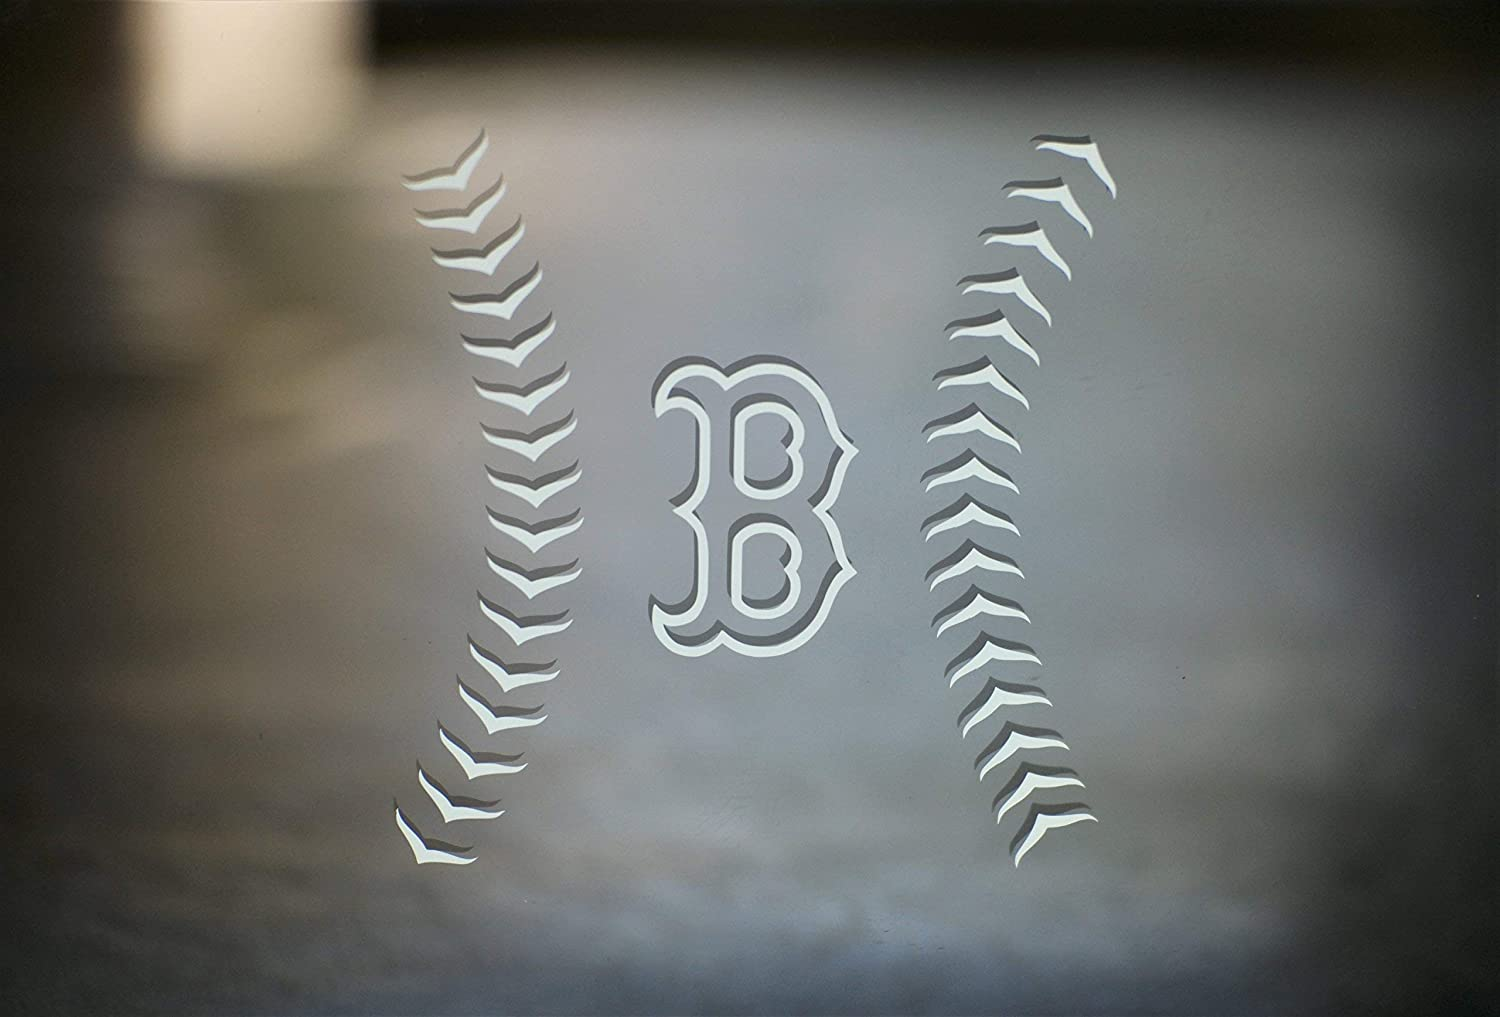 Boston Red Sox Inspired 'B' Special Custom Design Die-Cut 4 Vinyl Decal for Car Windows, Laptops or Wherever